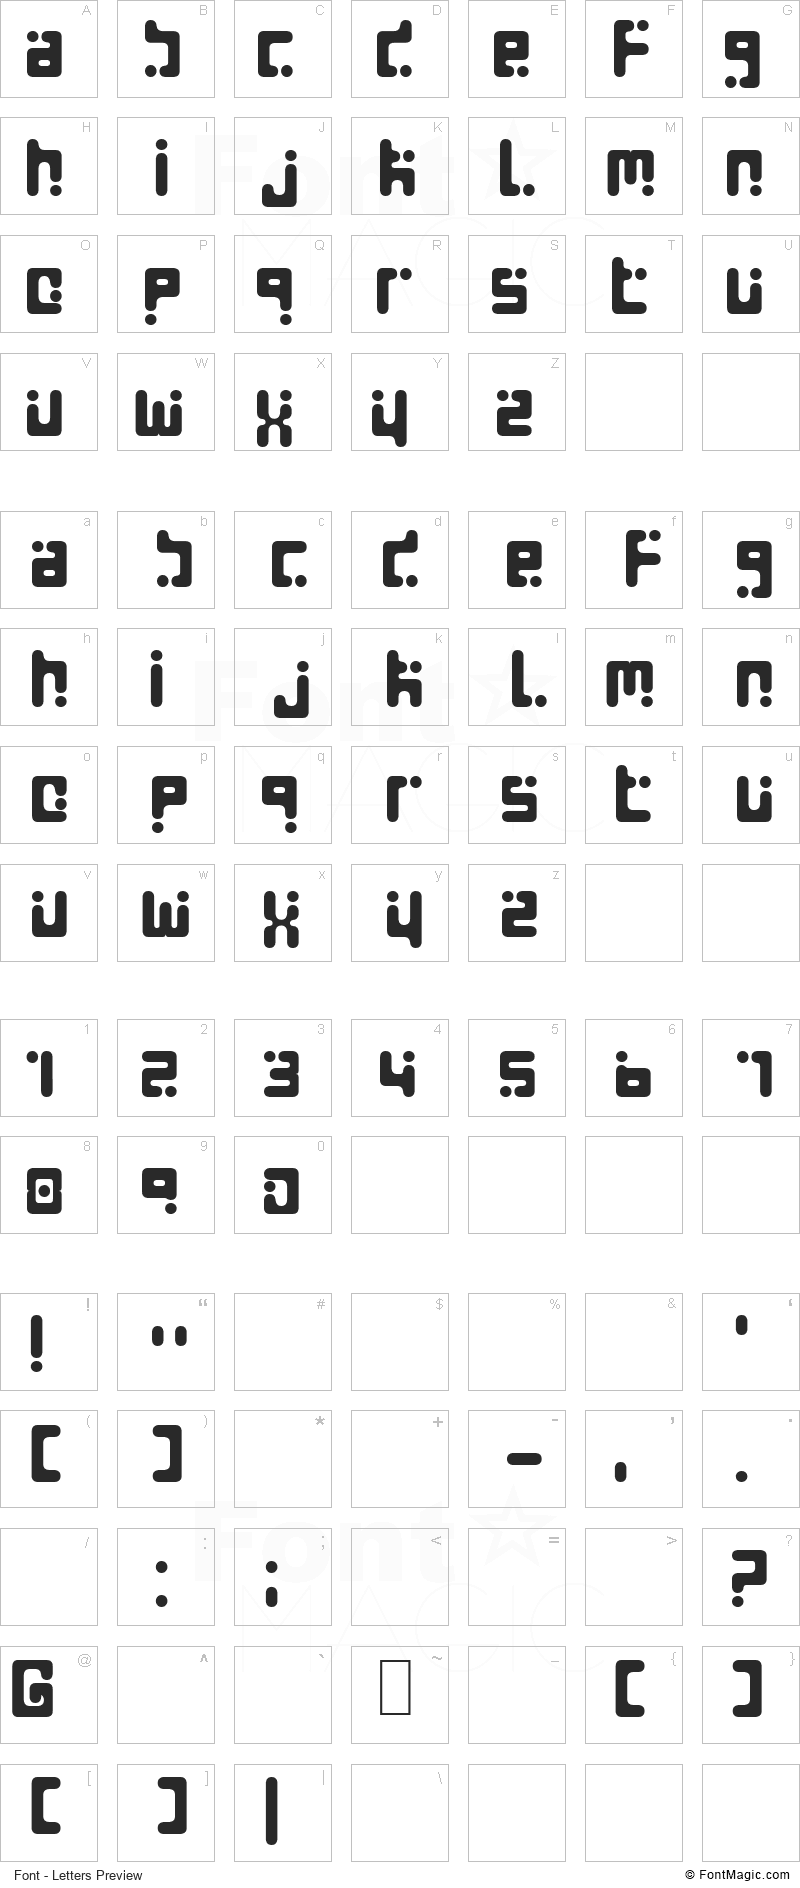 Seeds Font - All Latters Preview Chart